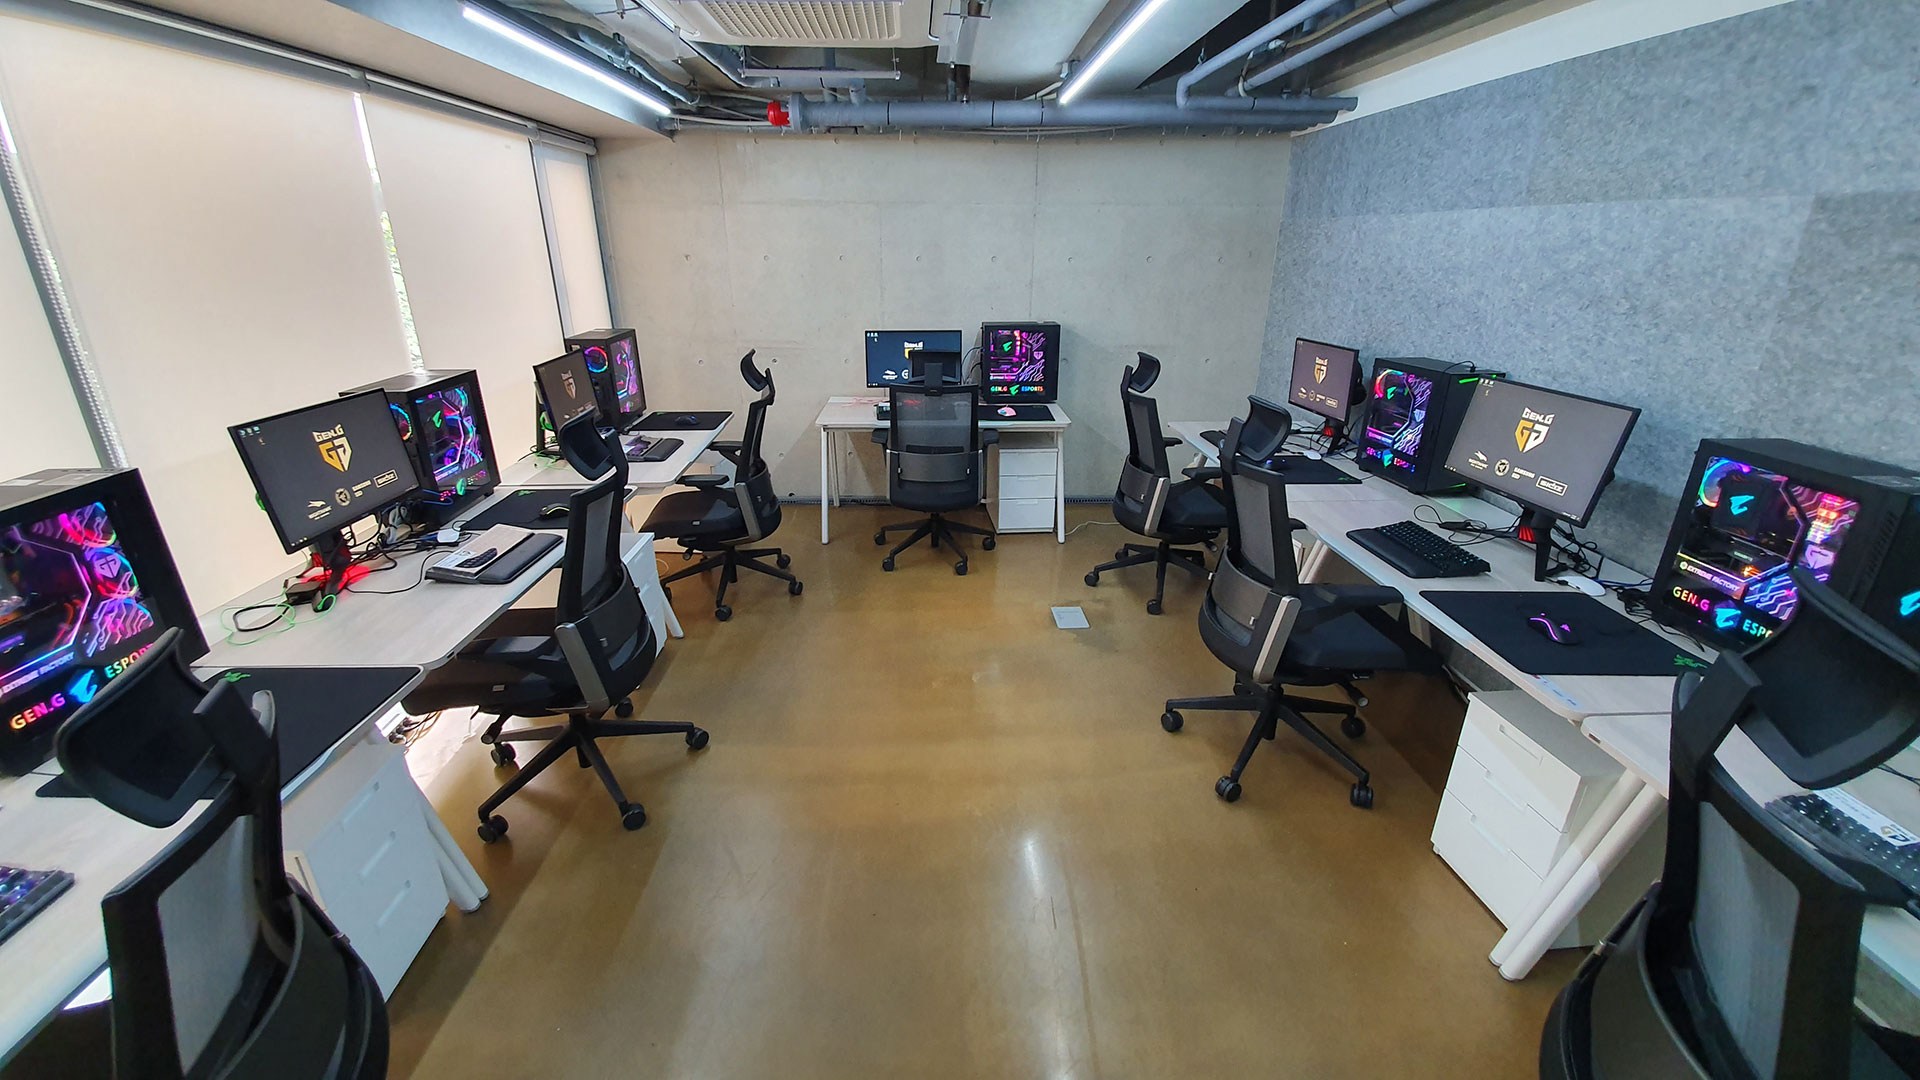 3D5CKex7Nf6dc6zkLunnSe - Pro gamers in South Korea train for 15 hours a day – here's what's involved